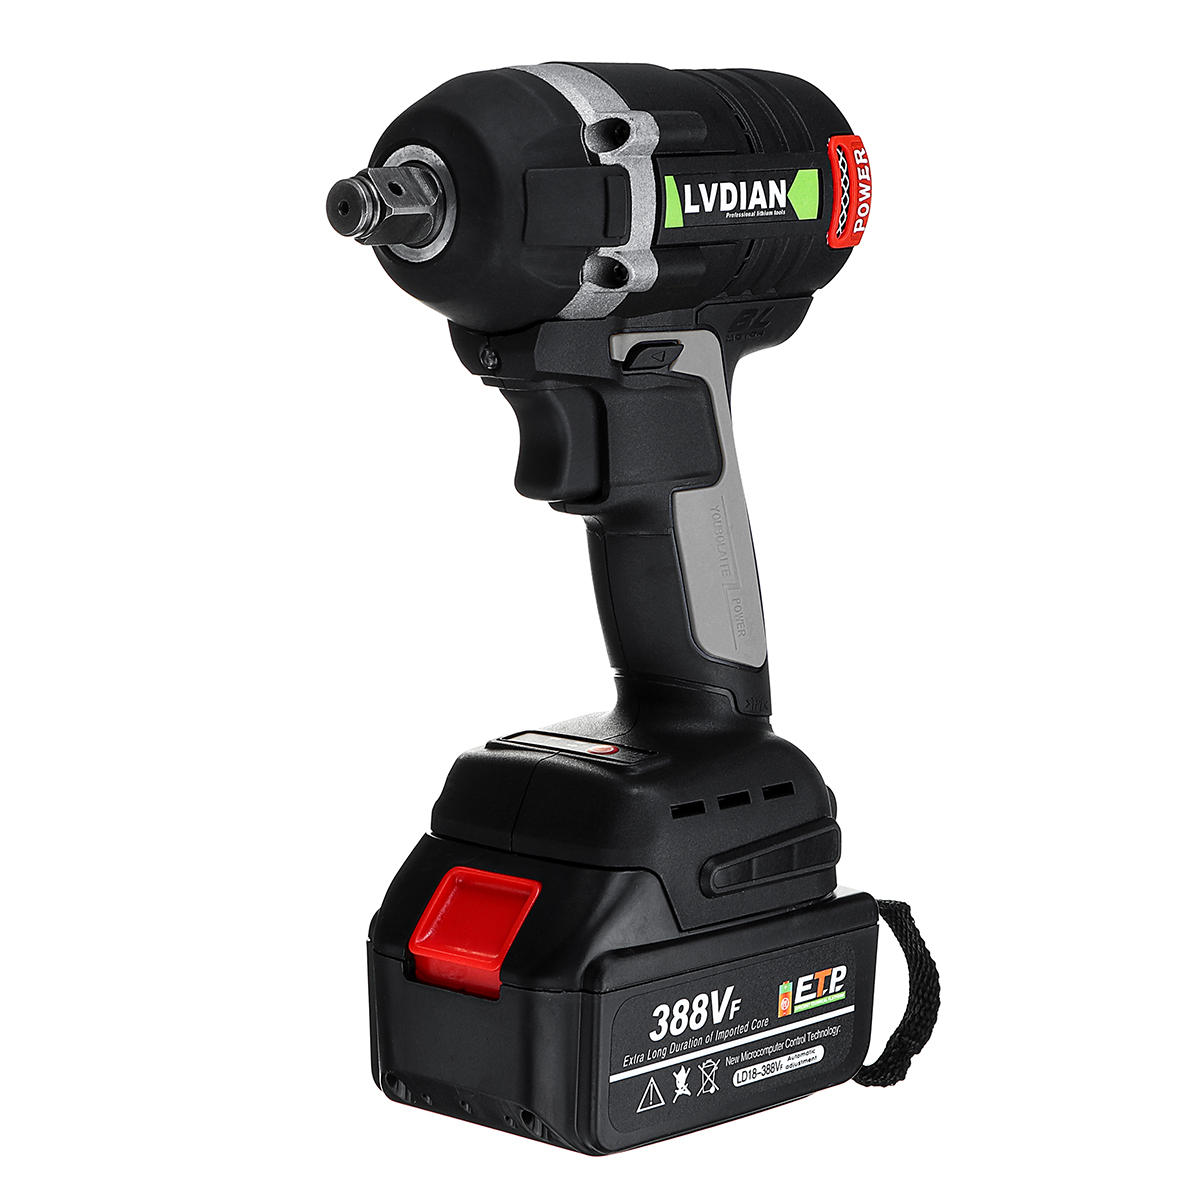 388VF 630N.m Max Brushless Impact Wrench Li-ion Battery Brushless Motor Electric Wrench Power Tool